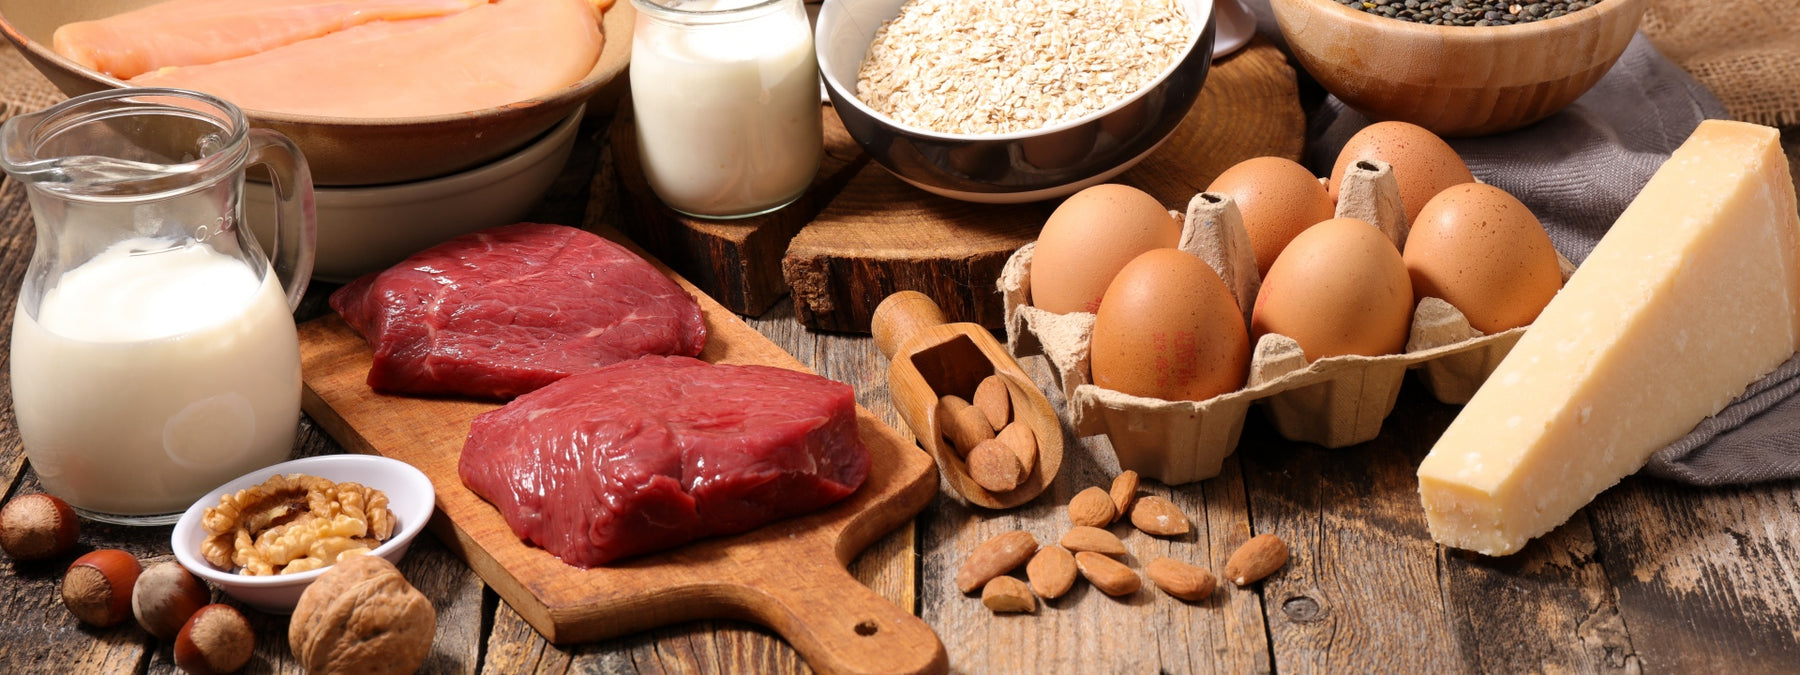 Up Your Intake! 10 Foods High in Protein